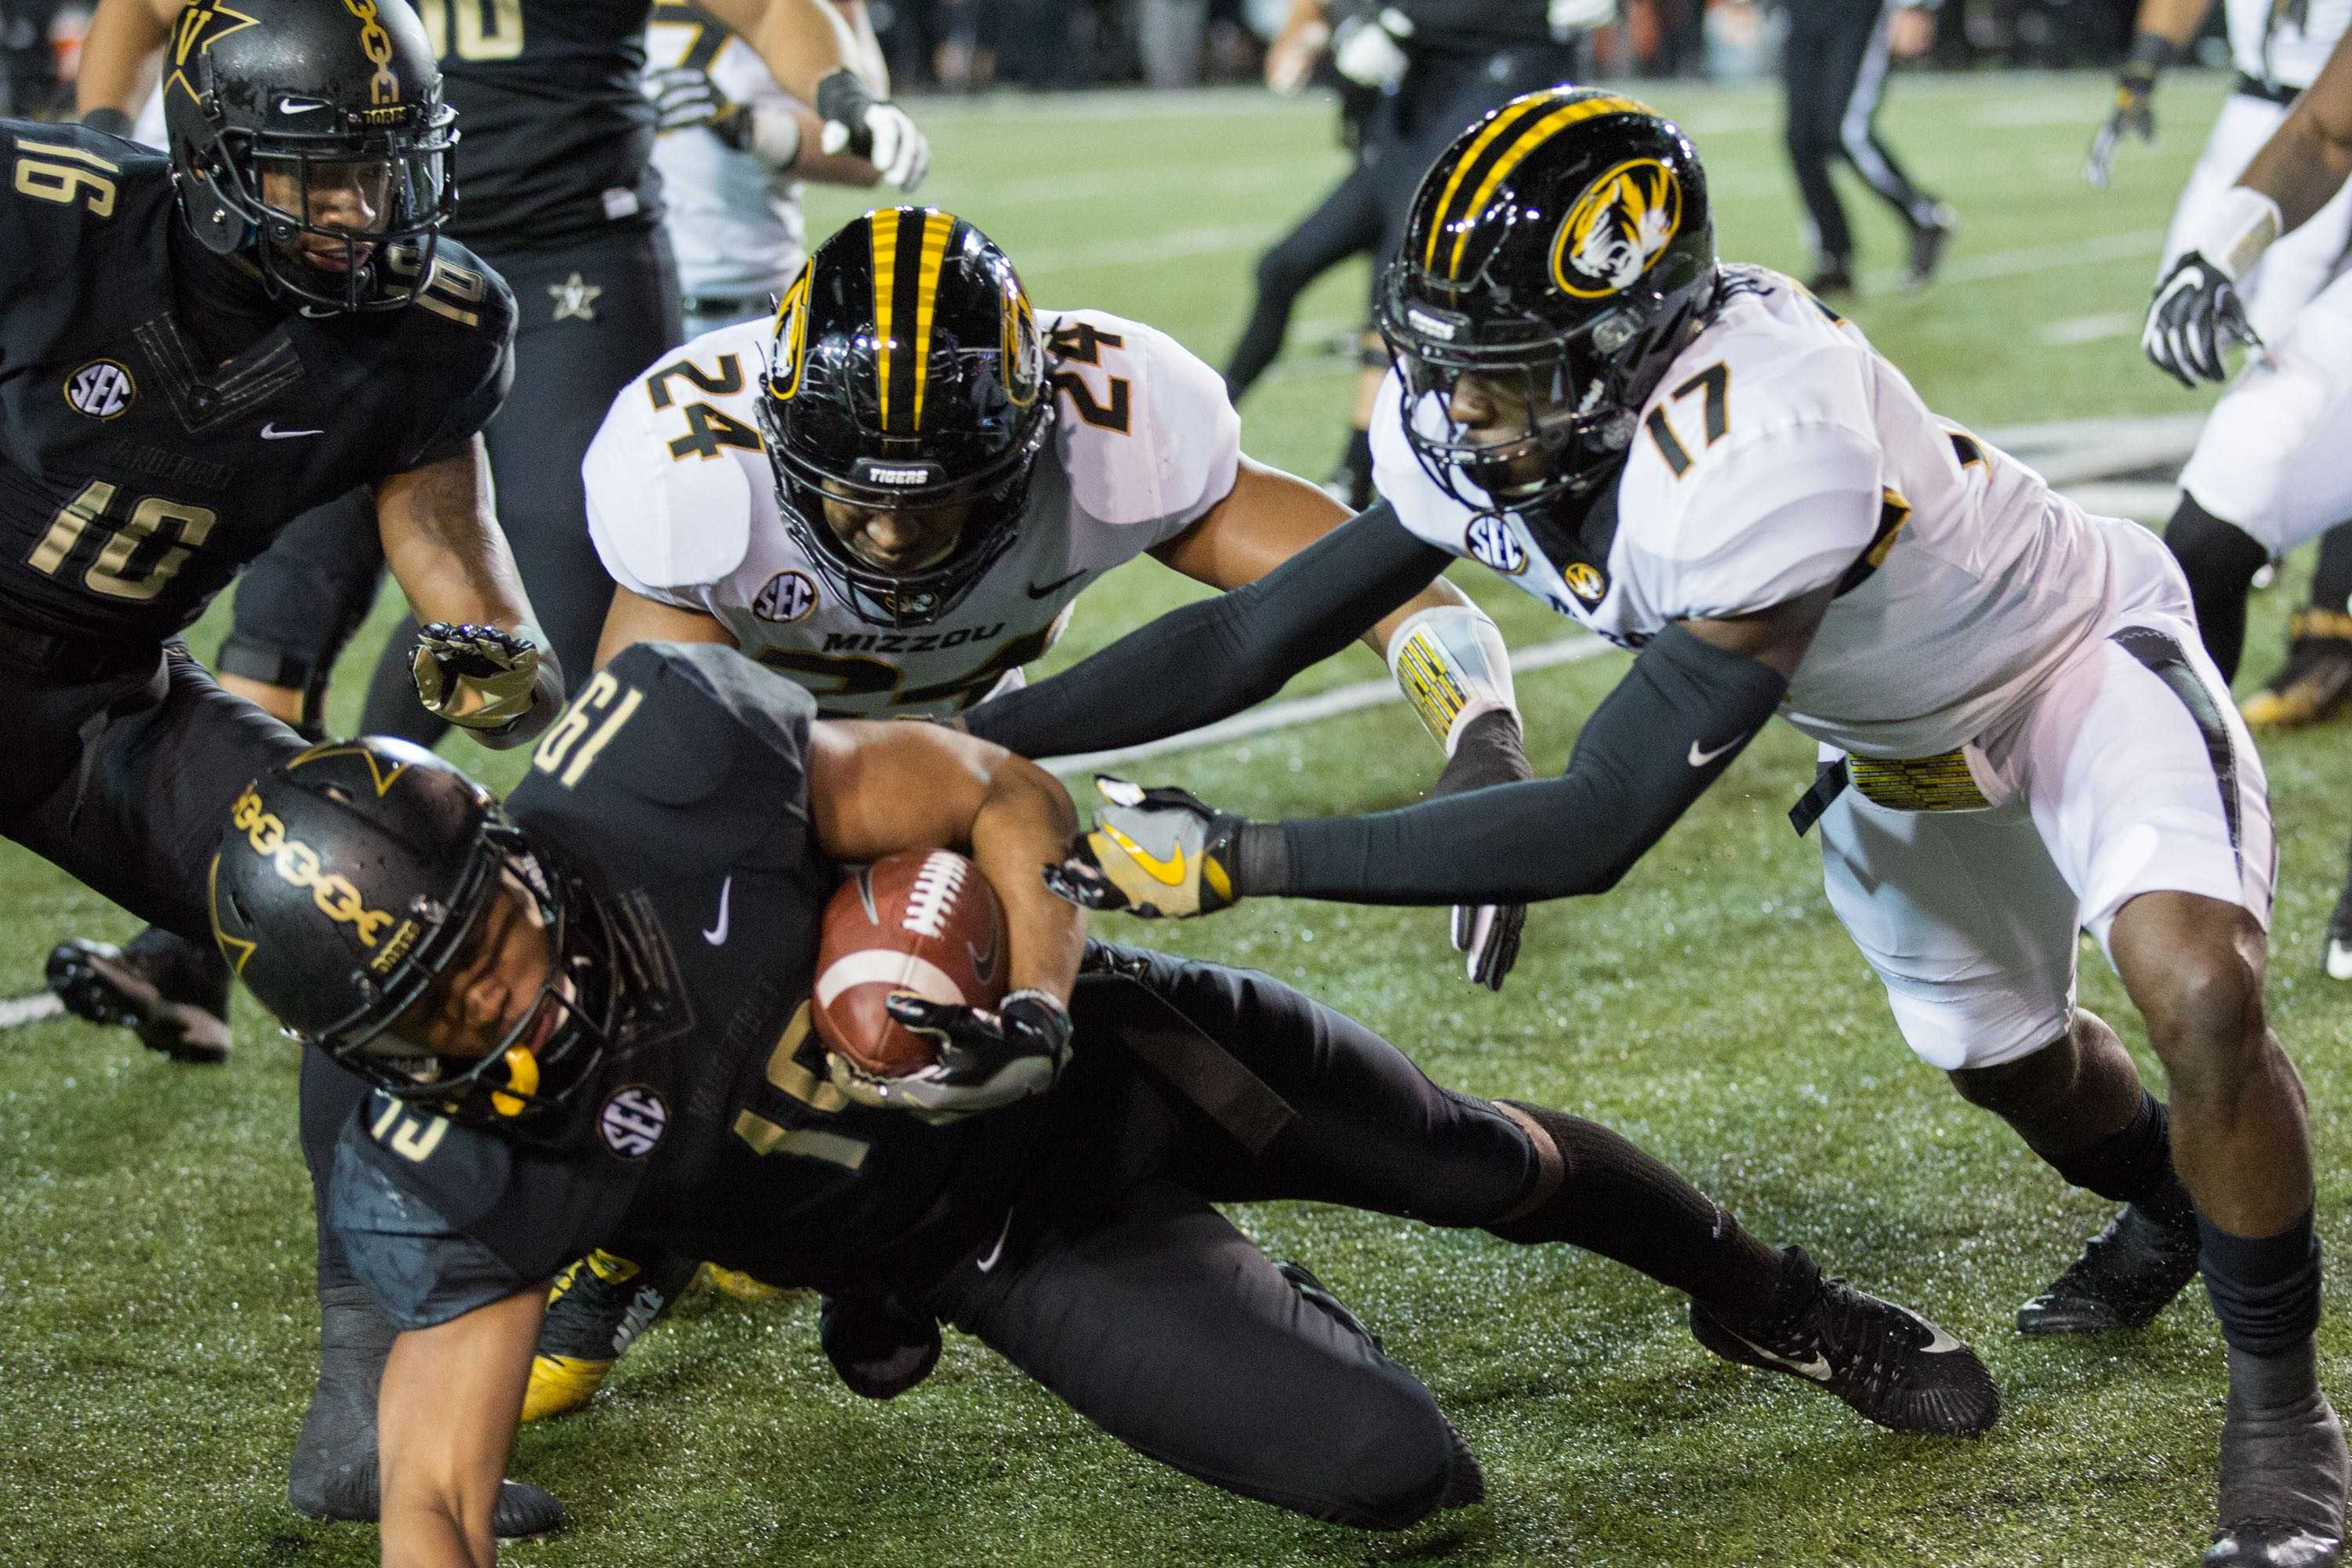 Missouri plays Vanderbilt in football on Saturday, November 18, 2017. (Photo by Claire Barnett)